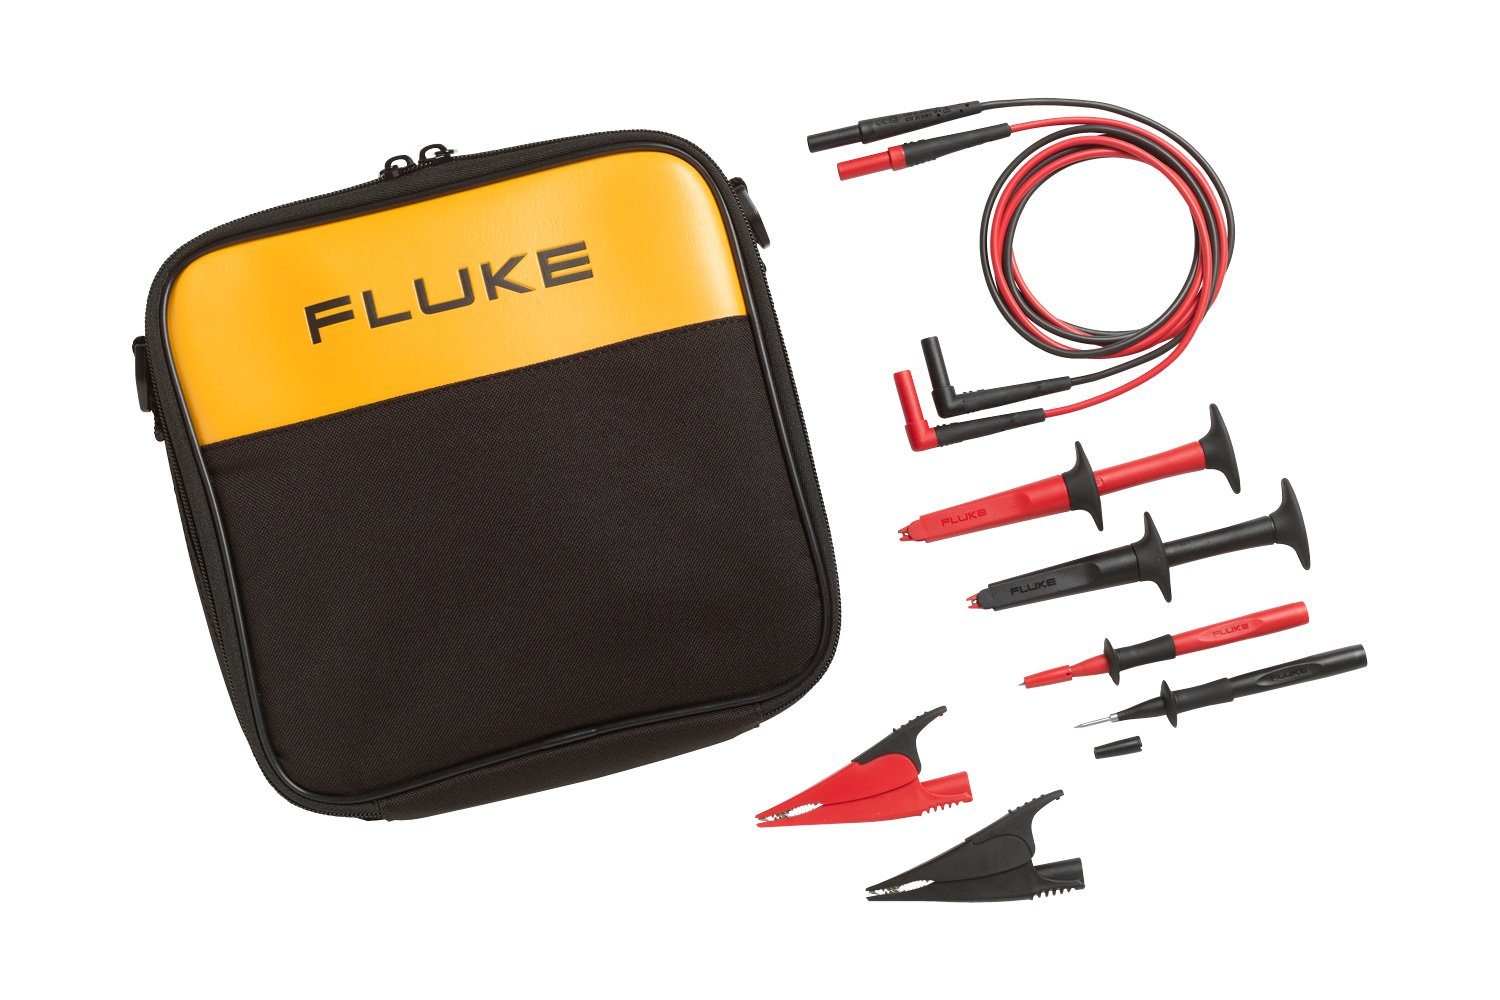 Fluke TLK-220 Suregrip Accessory Set With Meter Carry Case